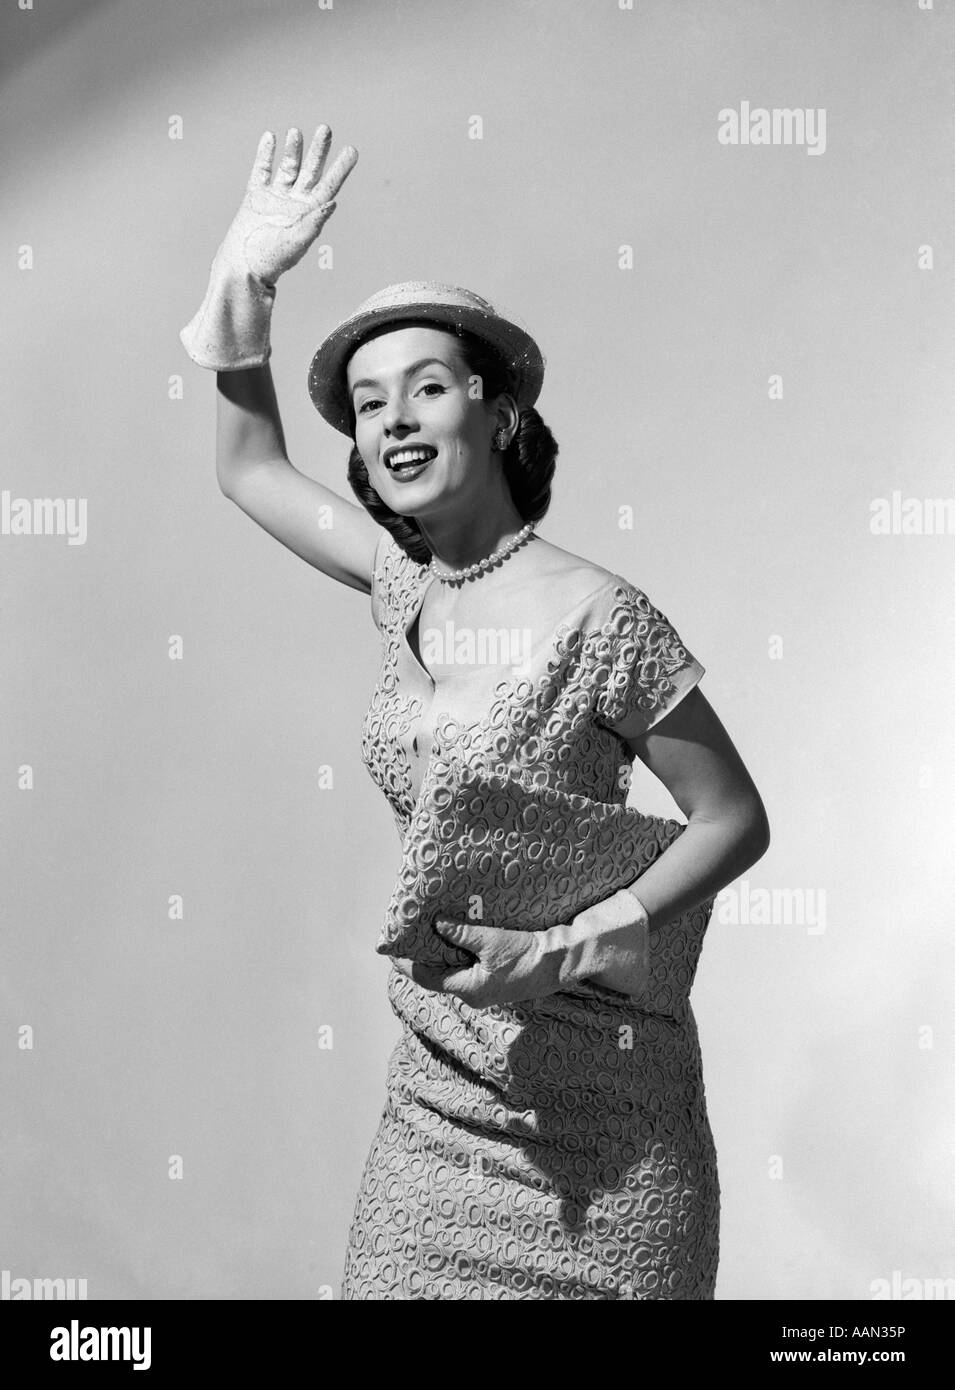 1950s WOMAN DRESSED UP WEARING GLOVES HAT AND HOLDING MATCHING  PURSE WAVING LOOKING AT CAMERA Stock Photo